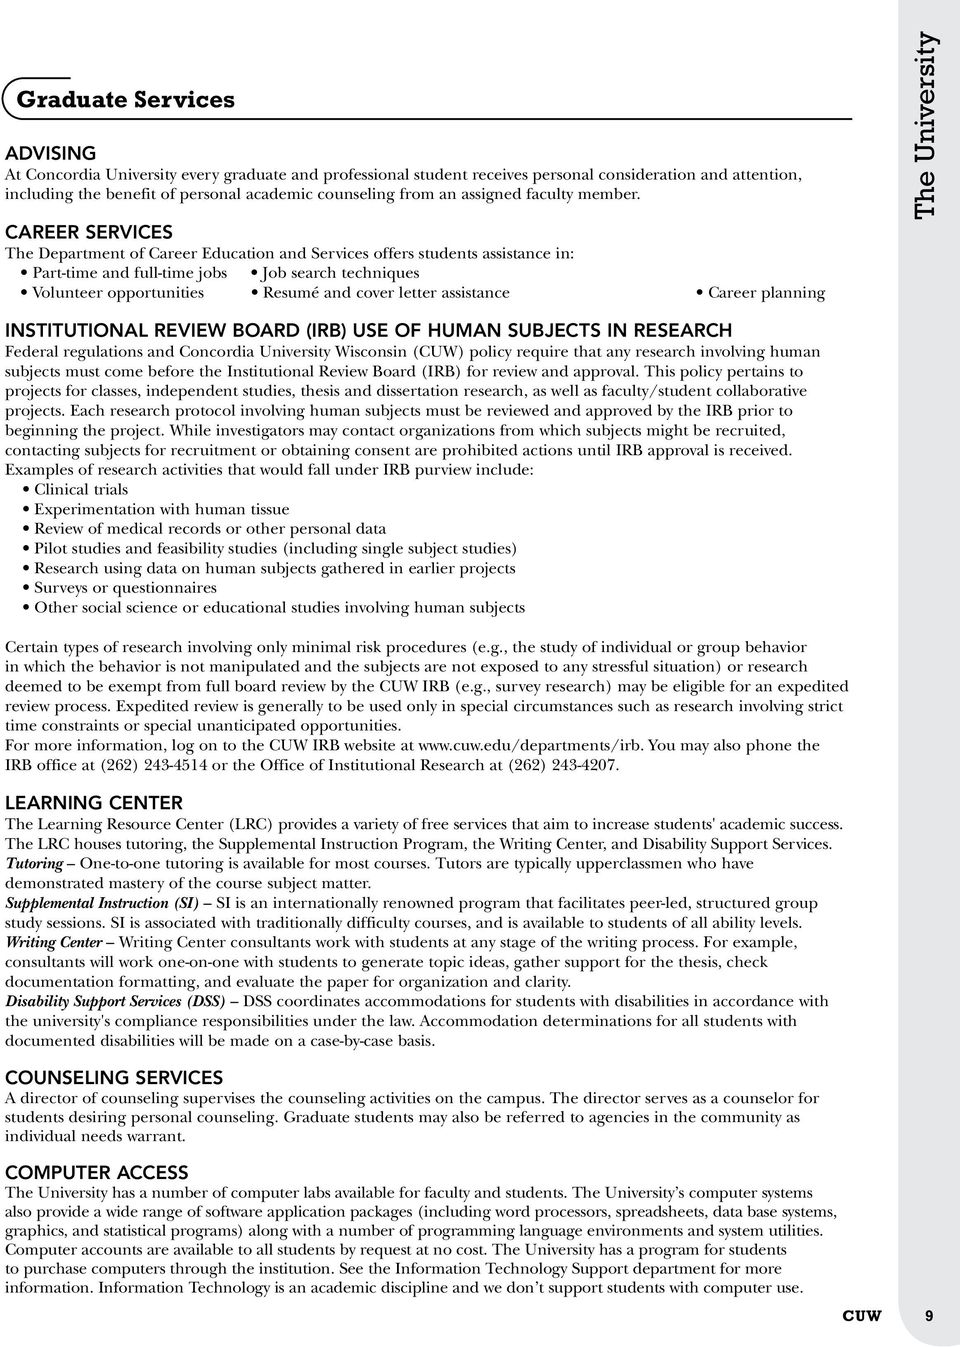 Resumé and cover letter assistance Career planning The University INStitUtionAL REVIEW BOArd (irb) USE OF HUMAN SUBJectS IN RESEArcH Federal regulations and Concordia University Wisconsin (CUW)